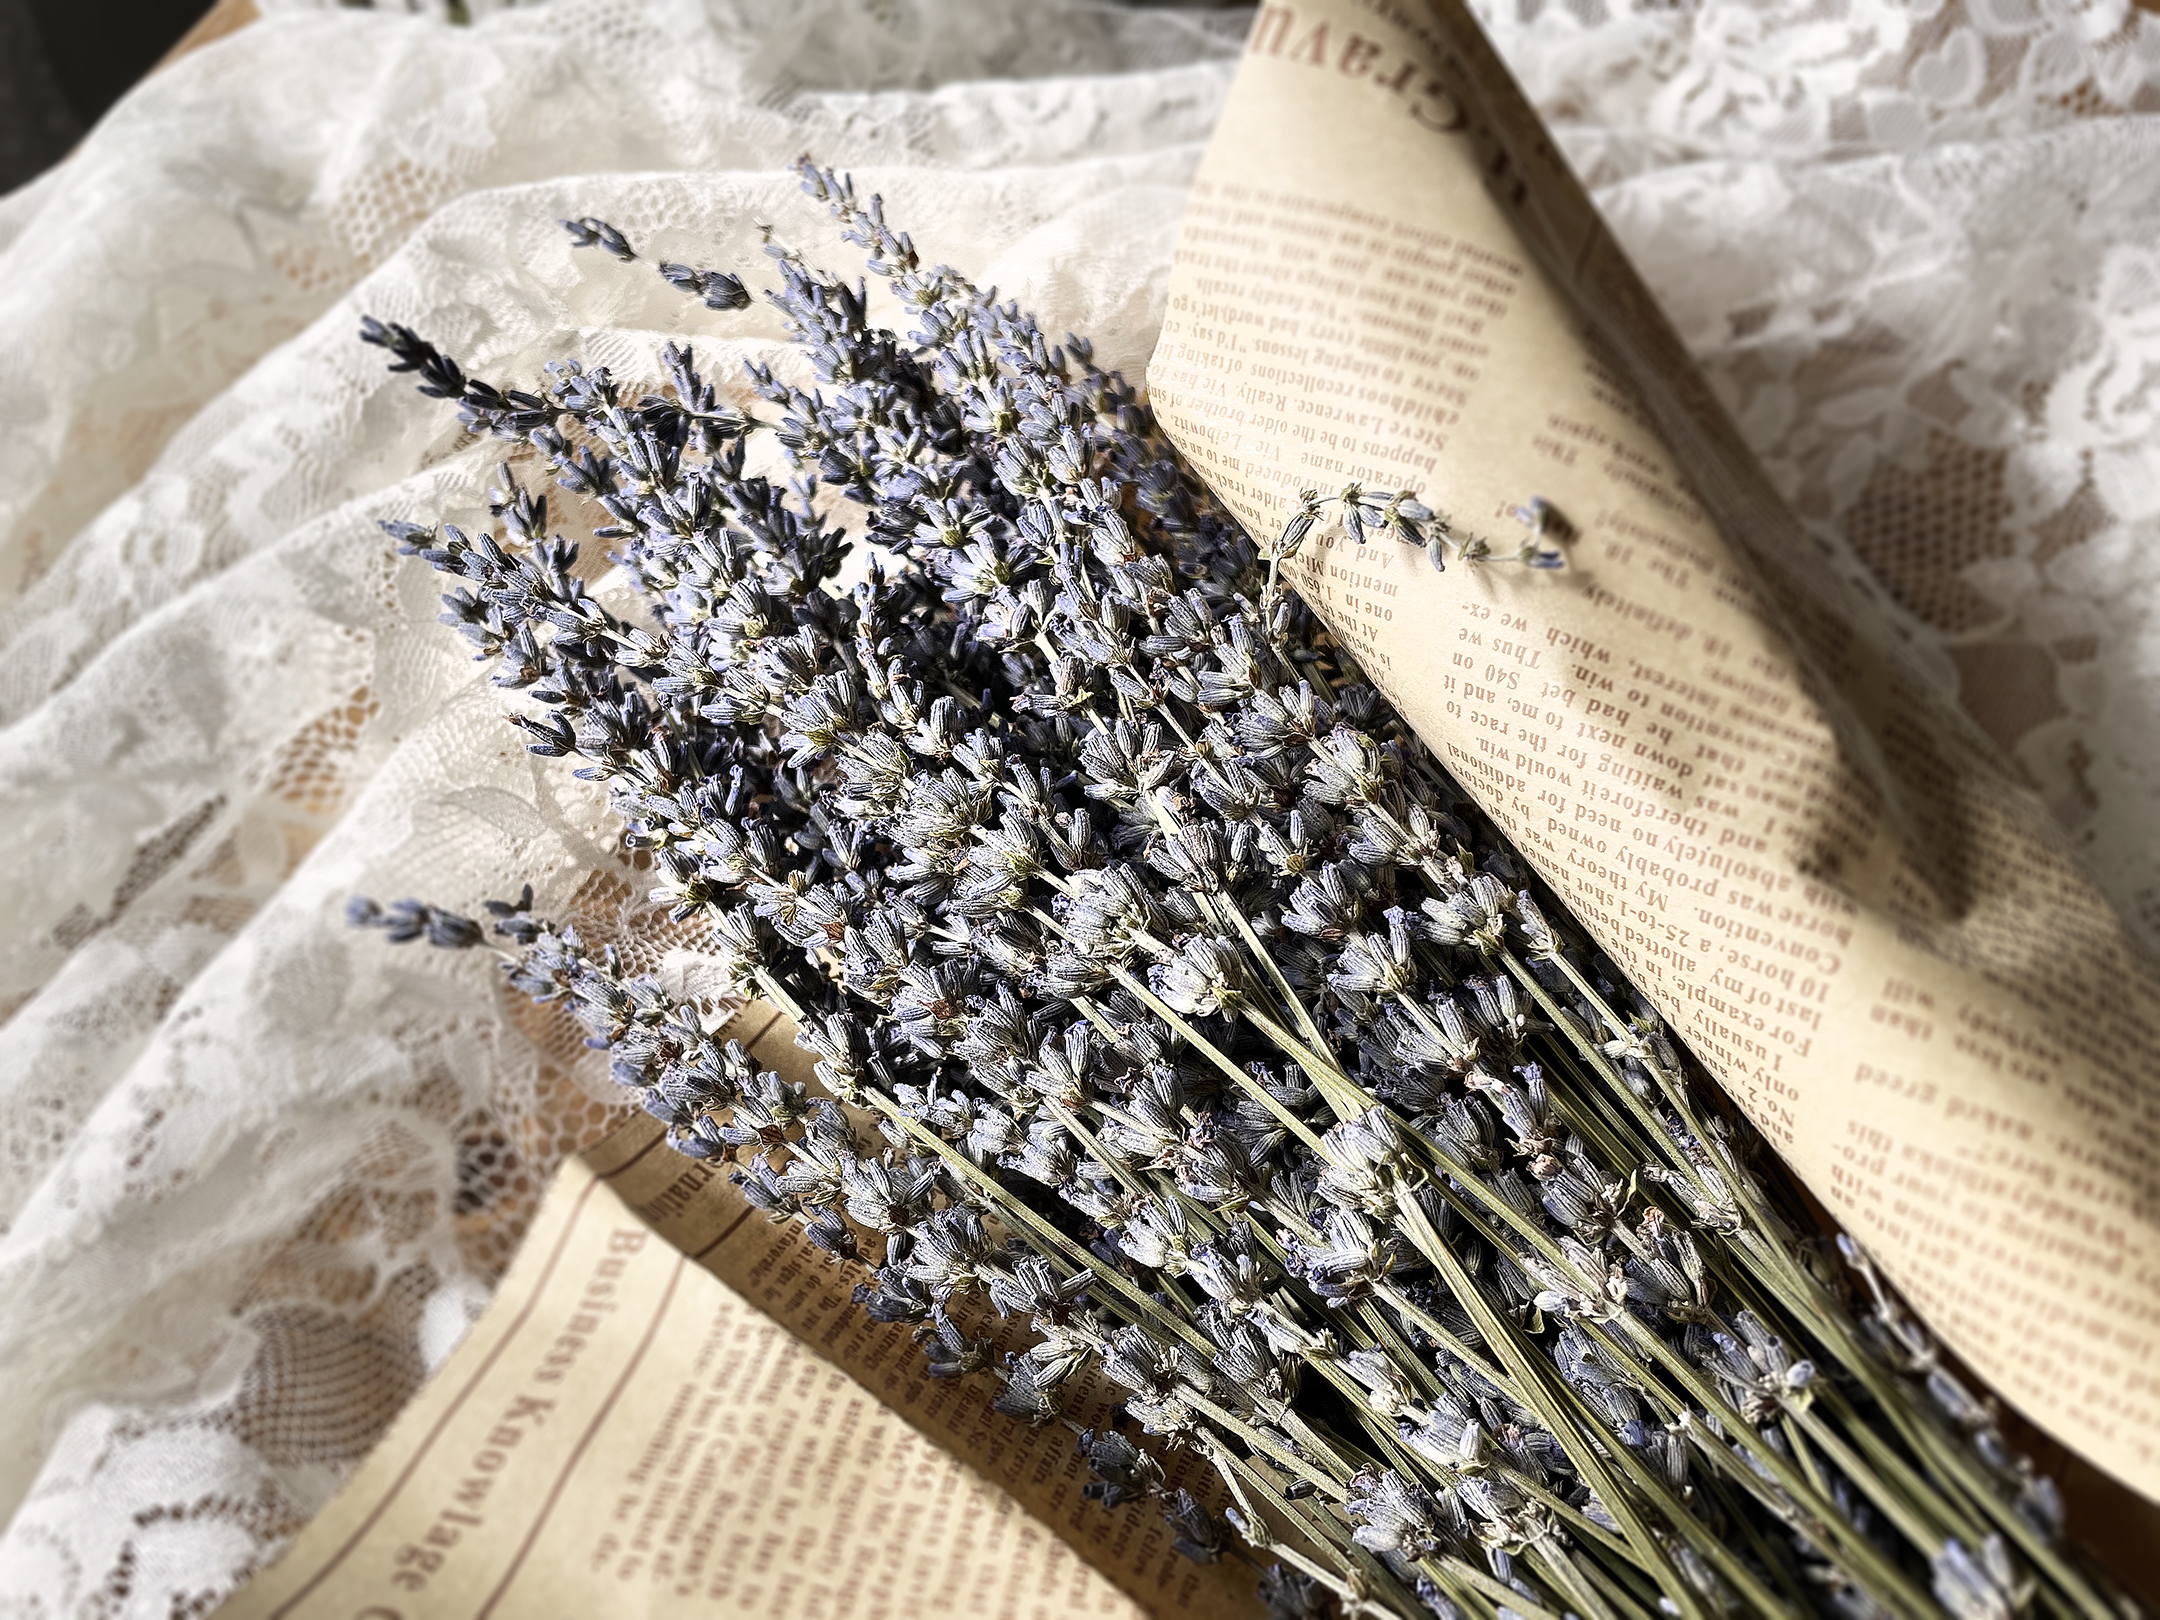 Boroughfare Home Vintage Lavender DIY Project with Dried Lavender